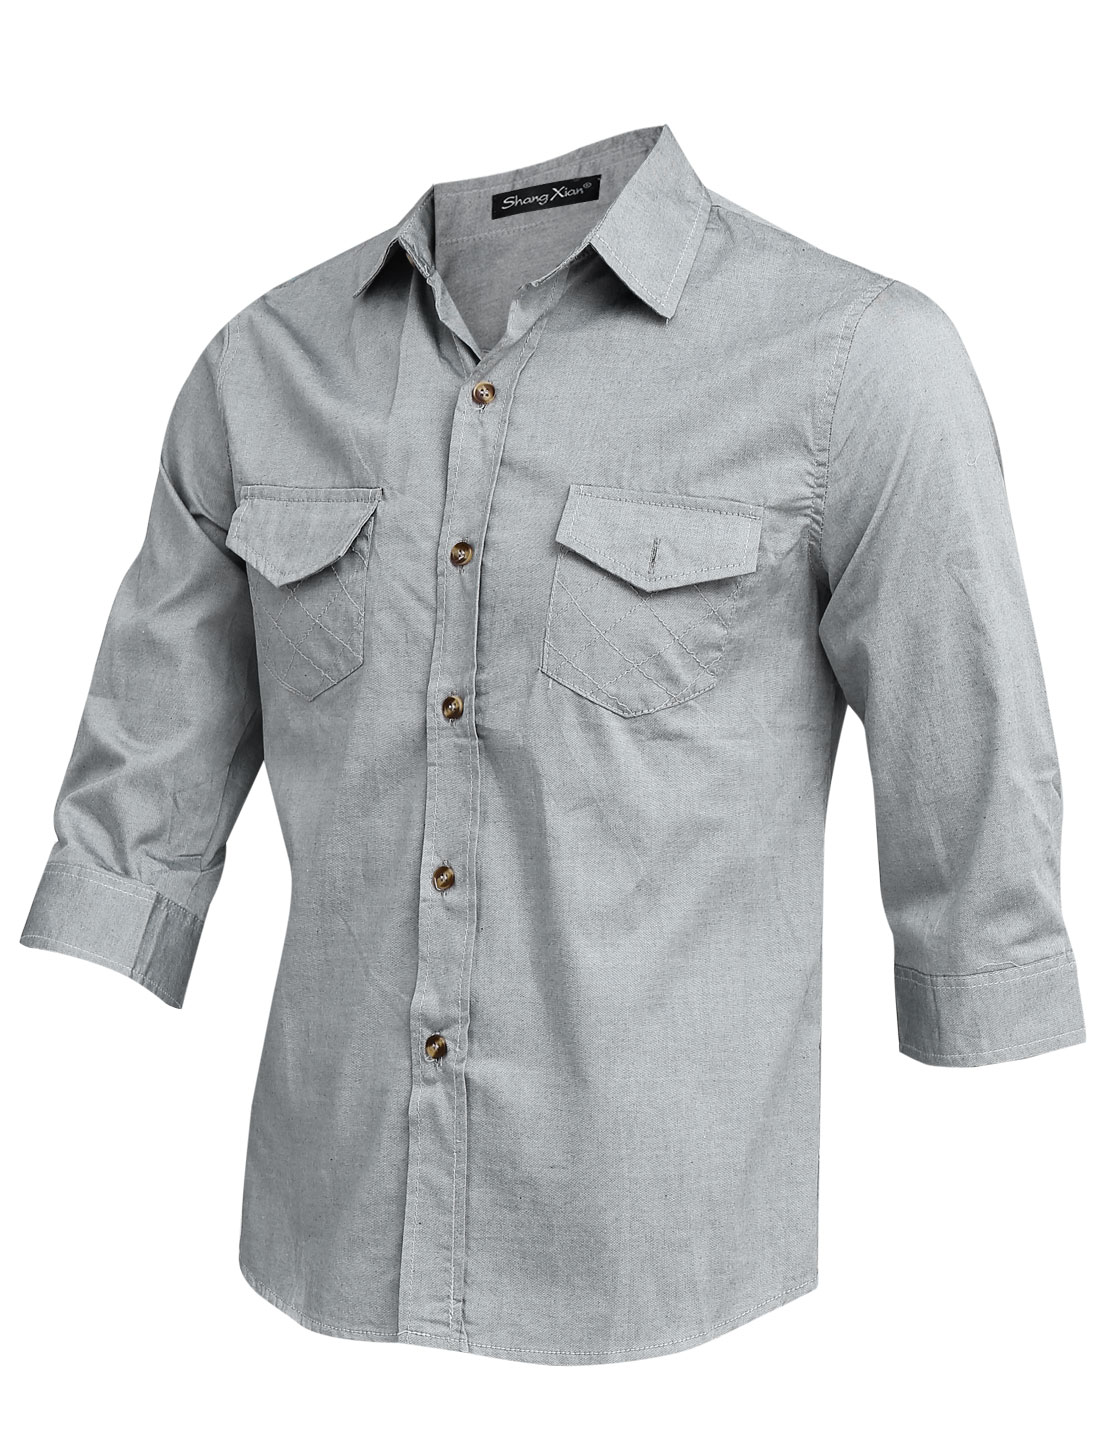 Man Single Breasted 3/4 Sleeves Button Cuffs Gray Shirt M